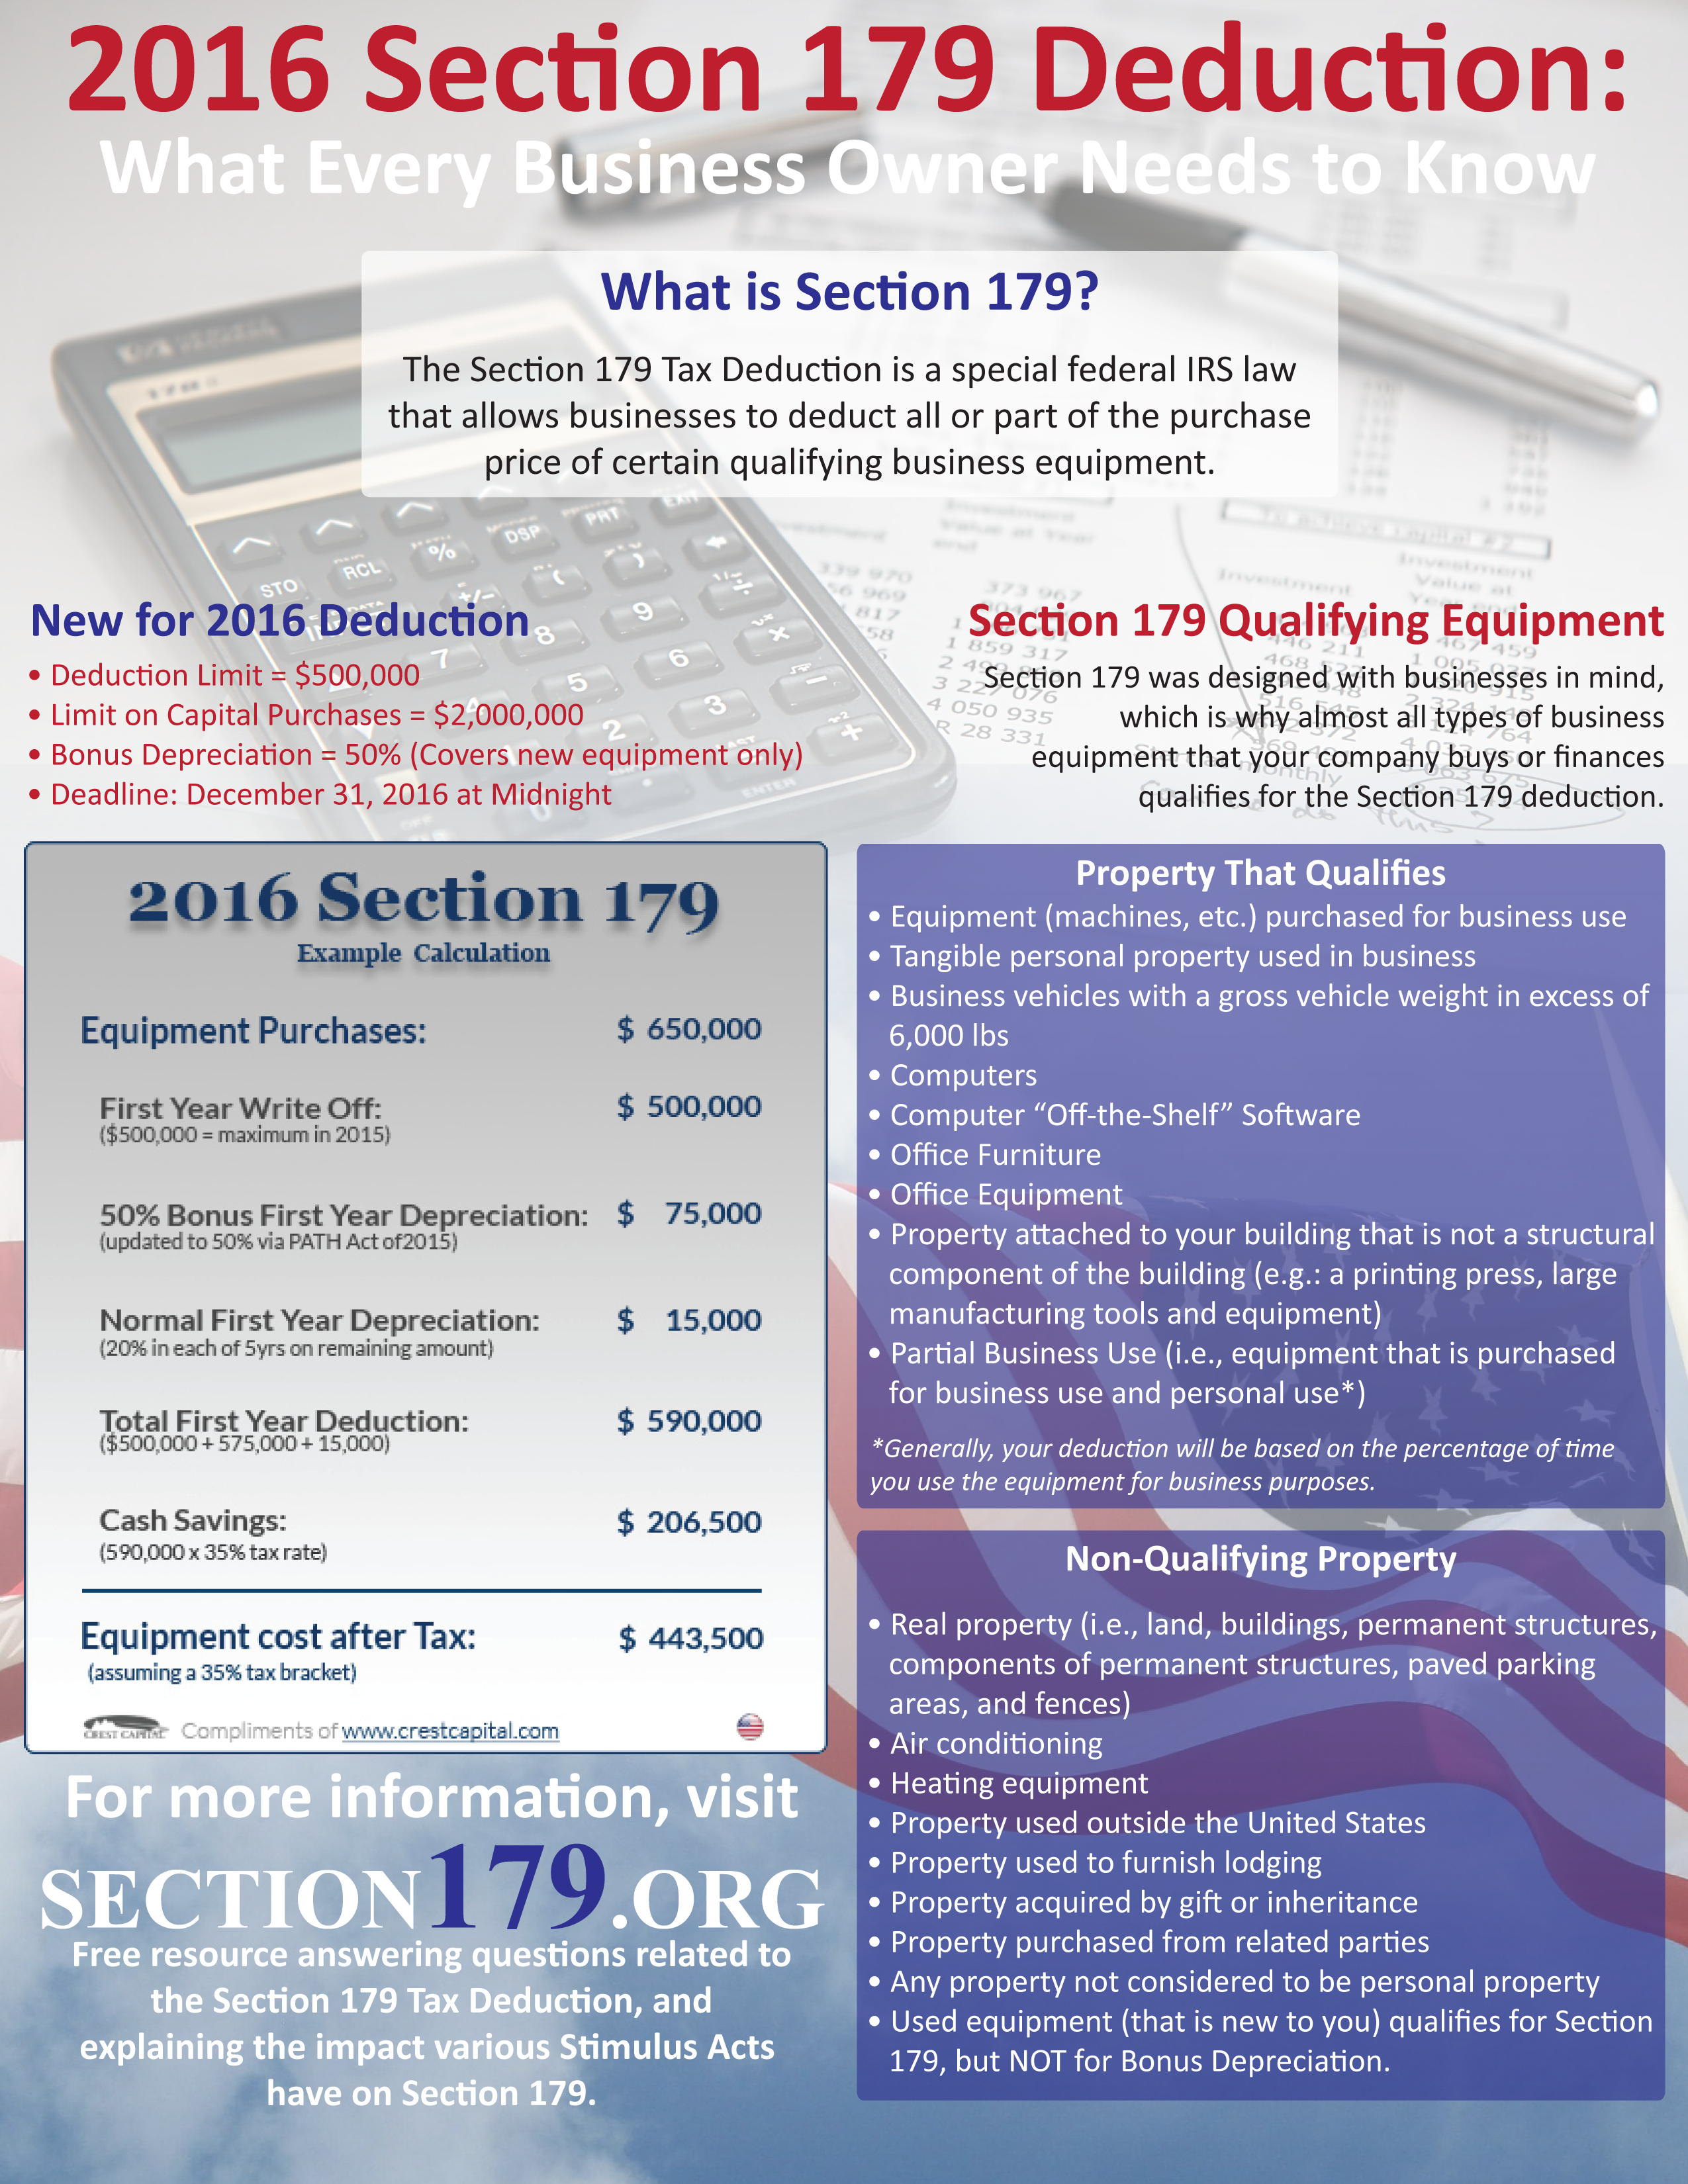 2016 Section 179 Deduction Guide